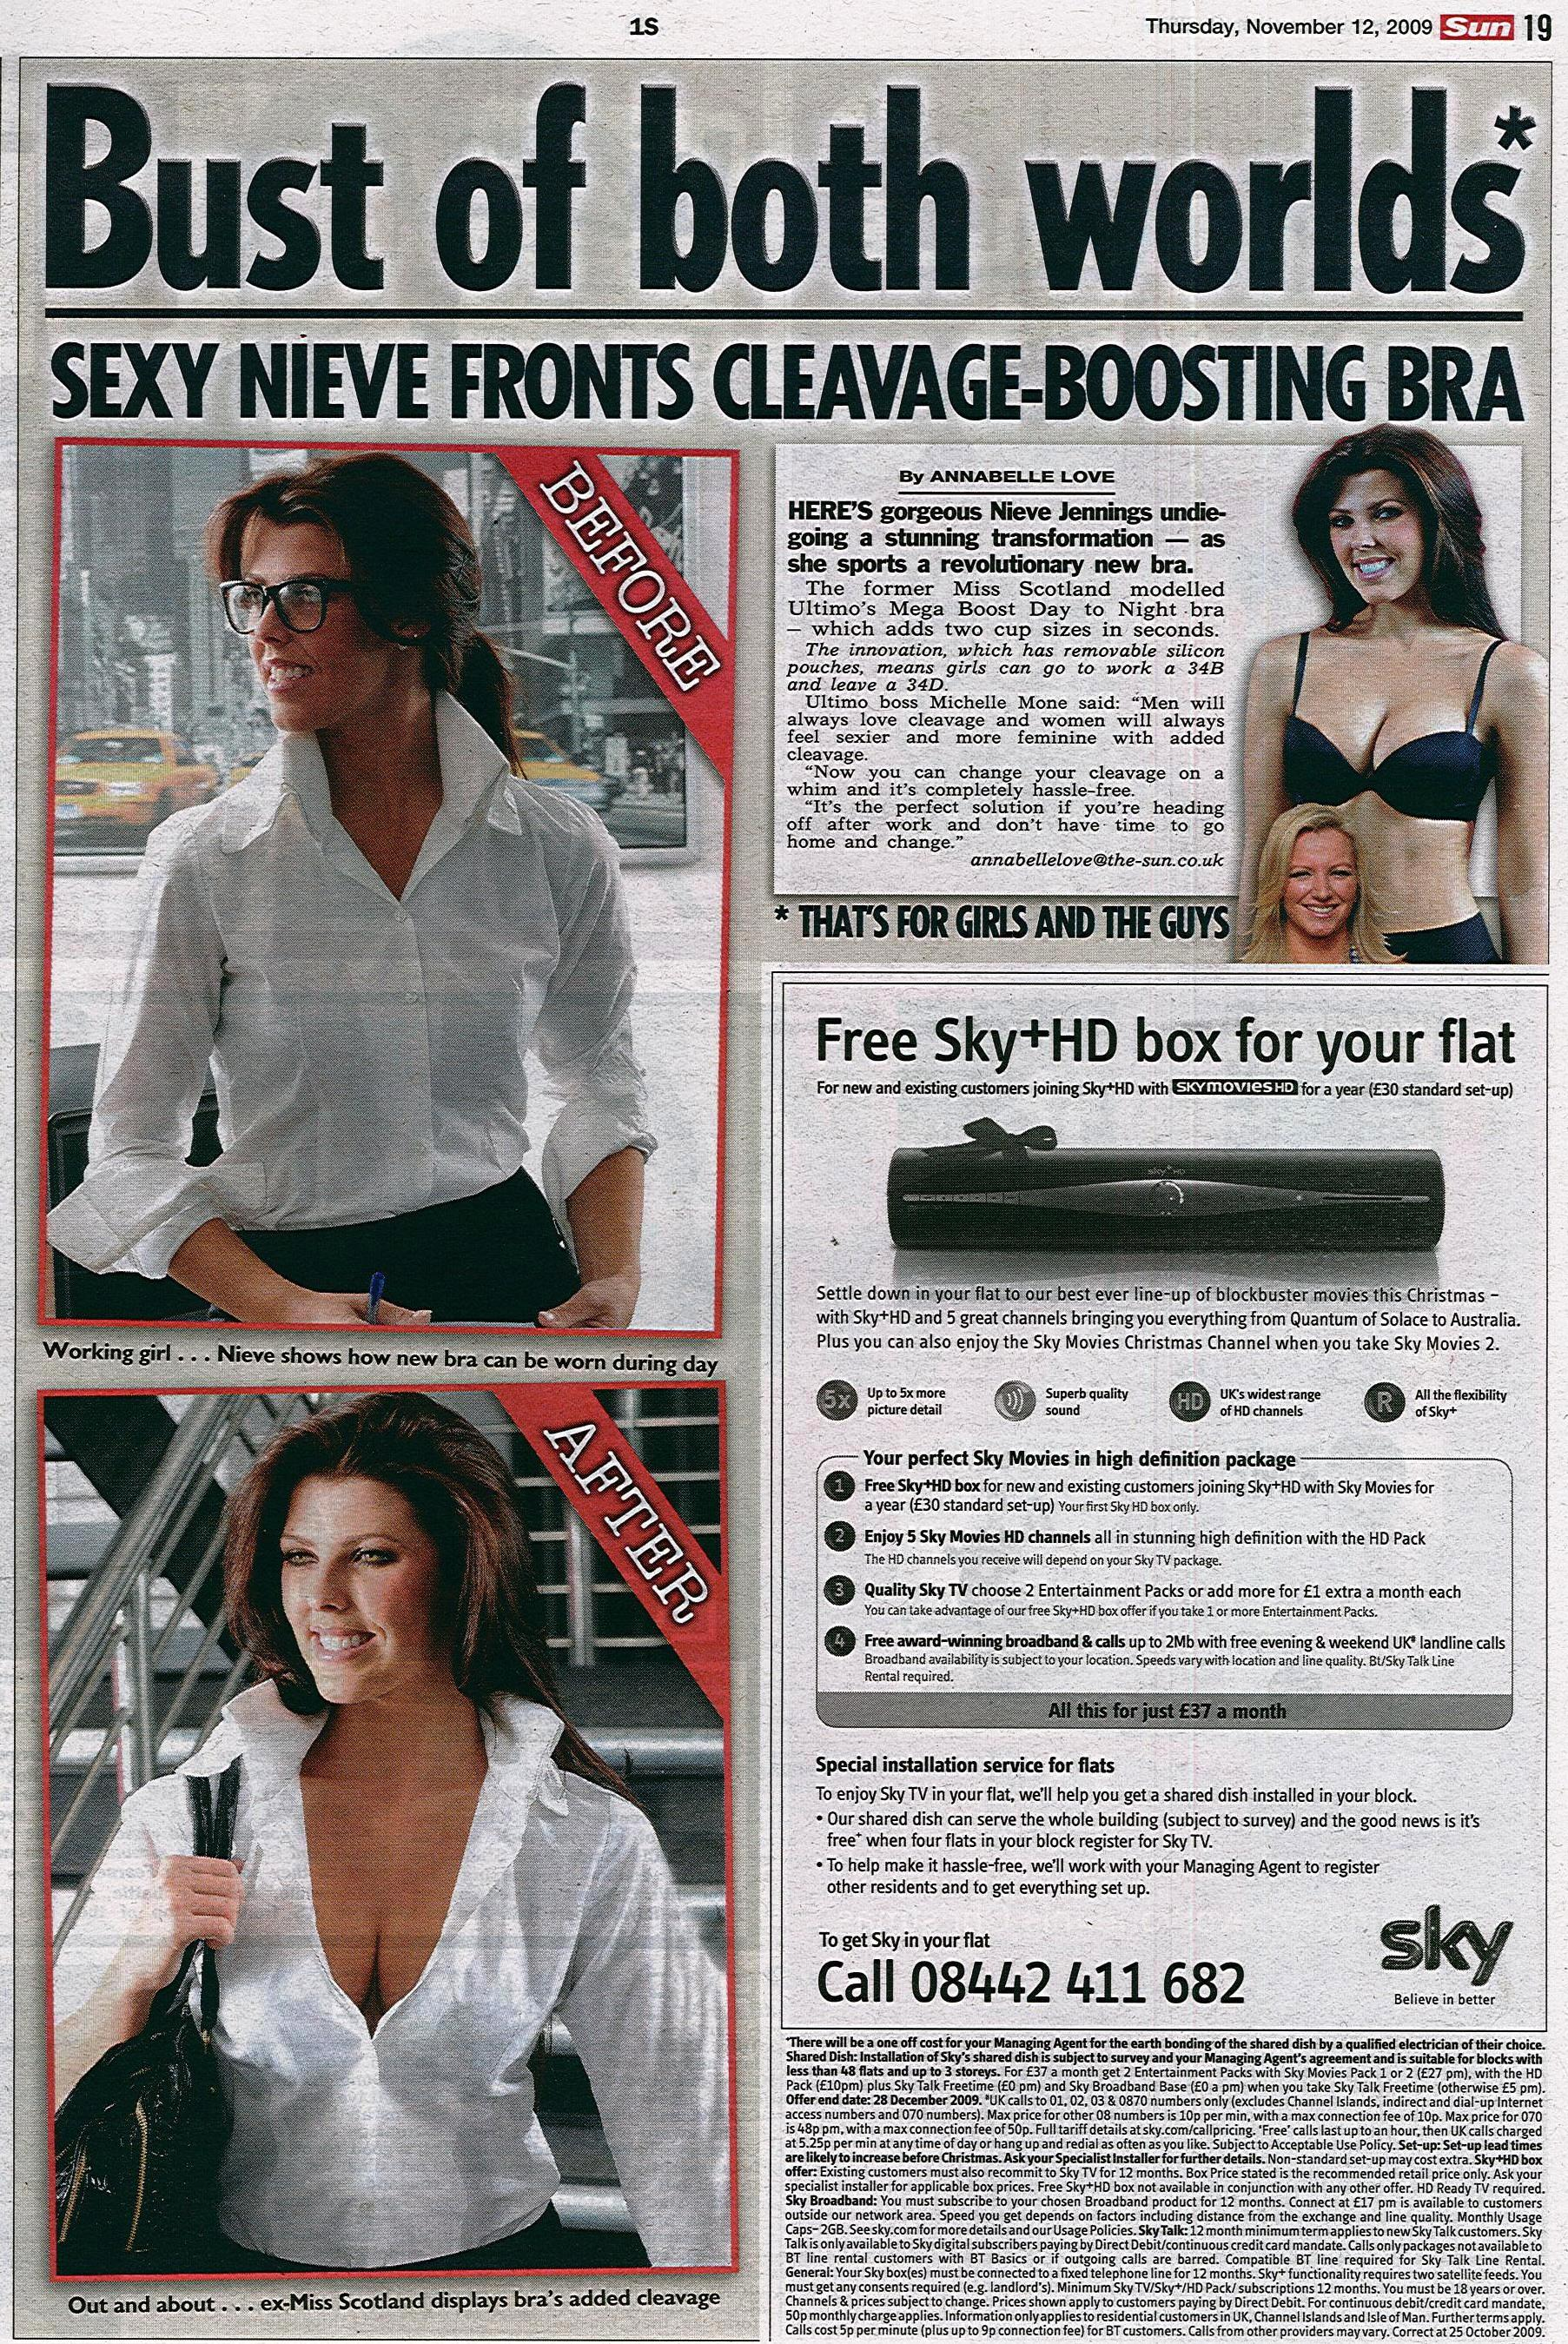 The-Scottish-Sun_Ultimo-Day-to-Night-Bra-Thu12th09